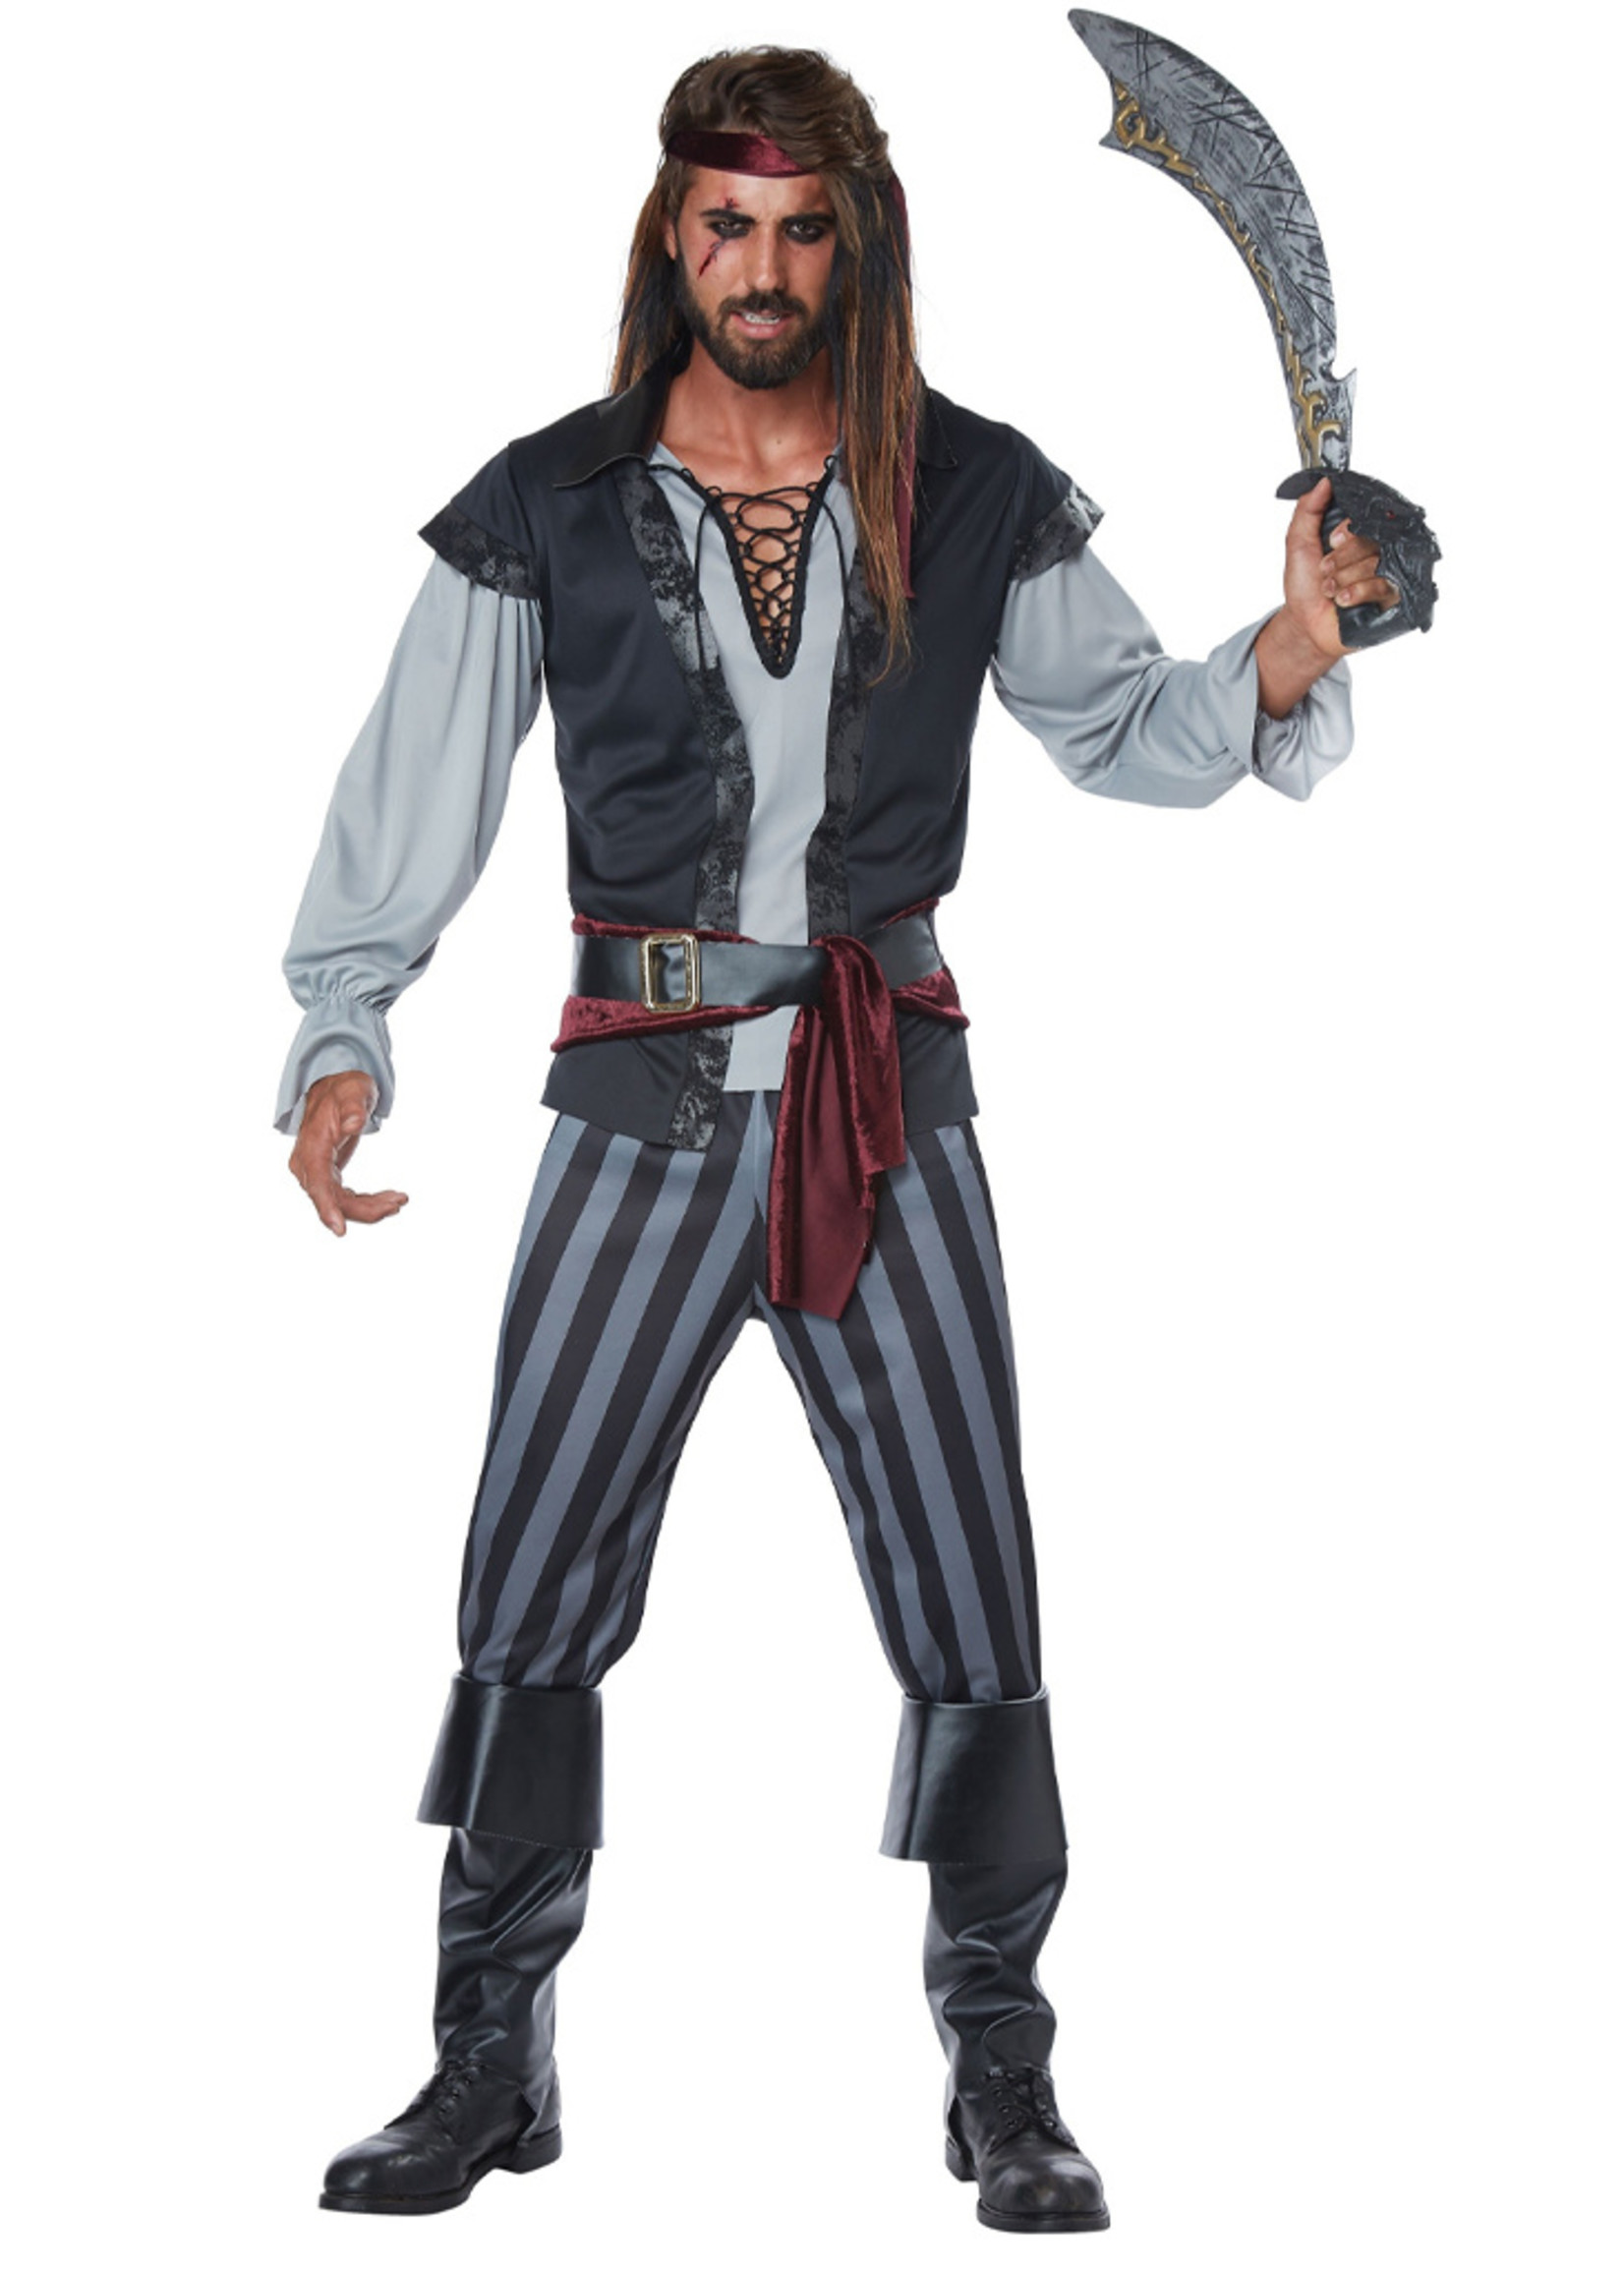 Scallywag Pirate Costume - Men's Plus